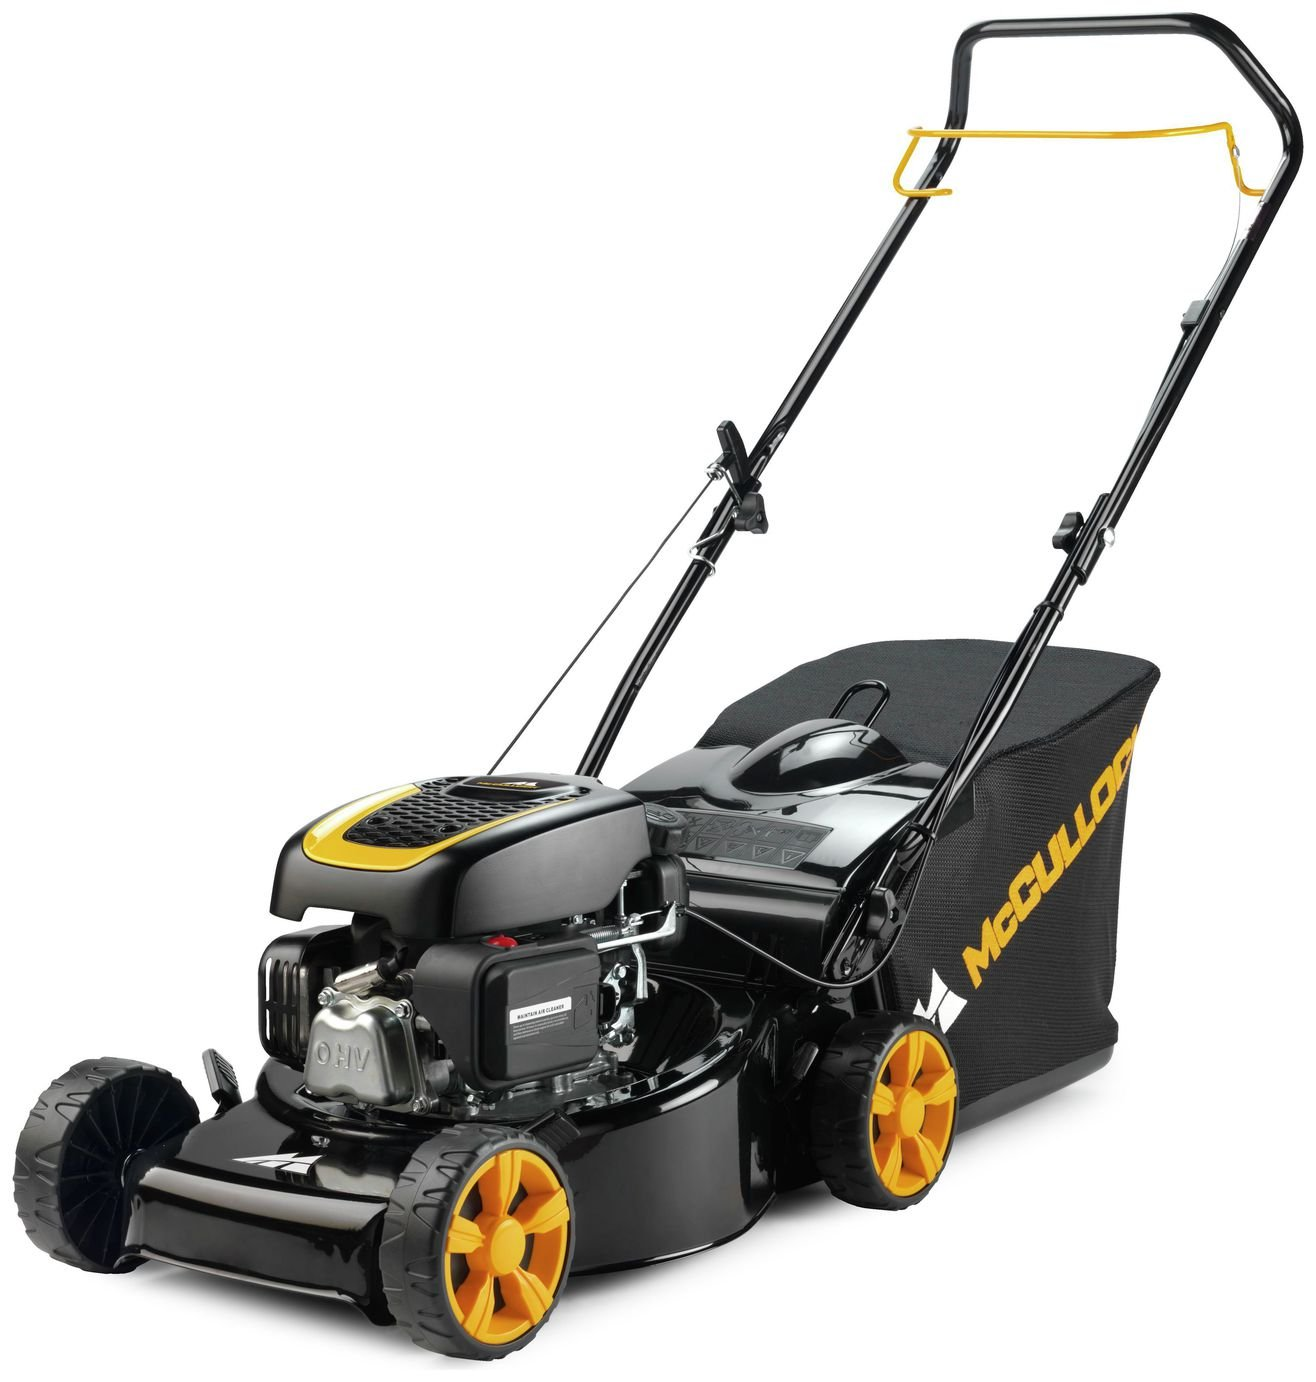 McCulloch M40-120 Classic Petrol Lawnmower review